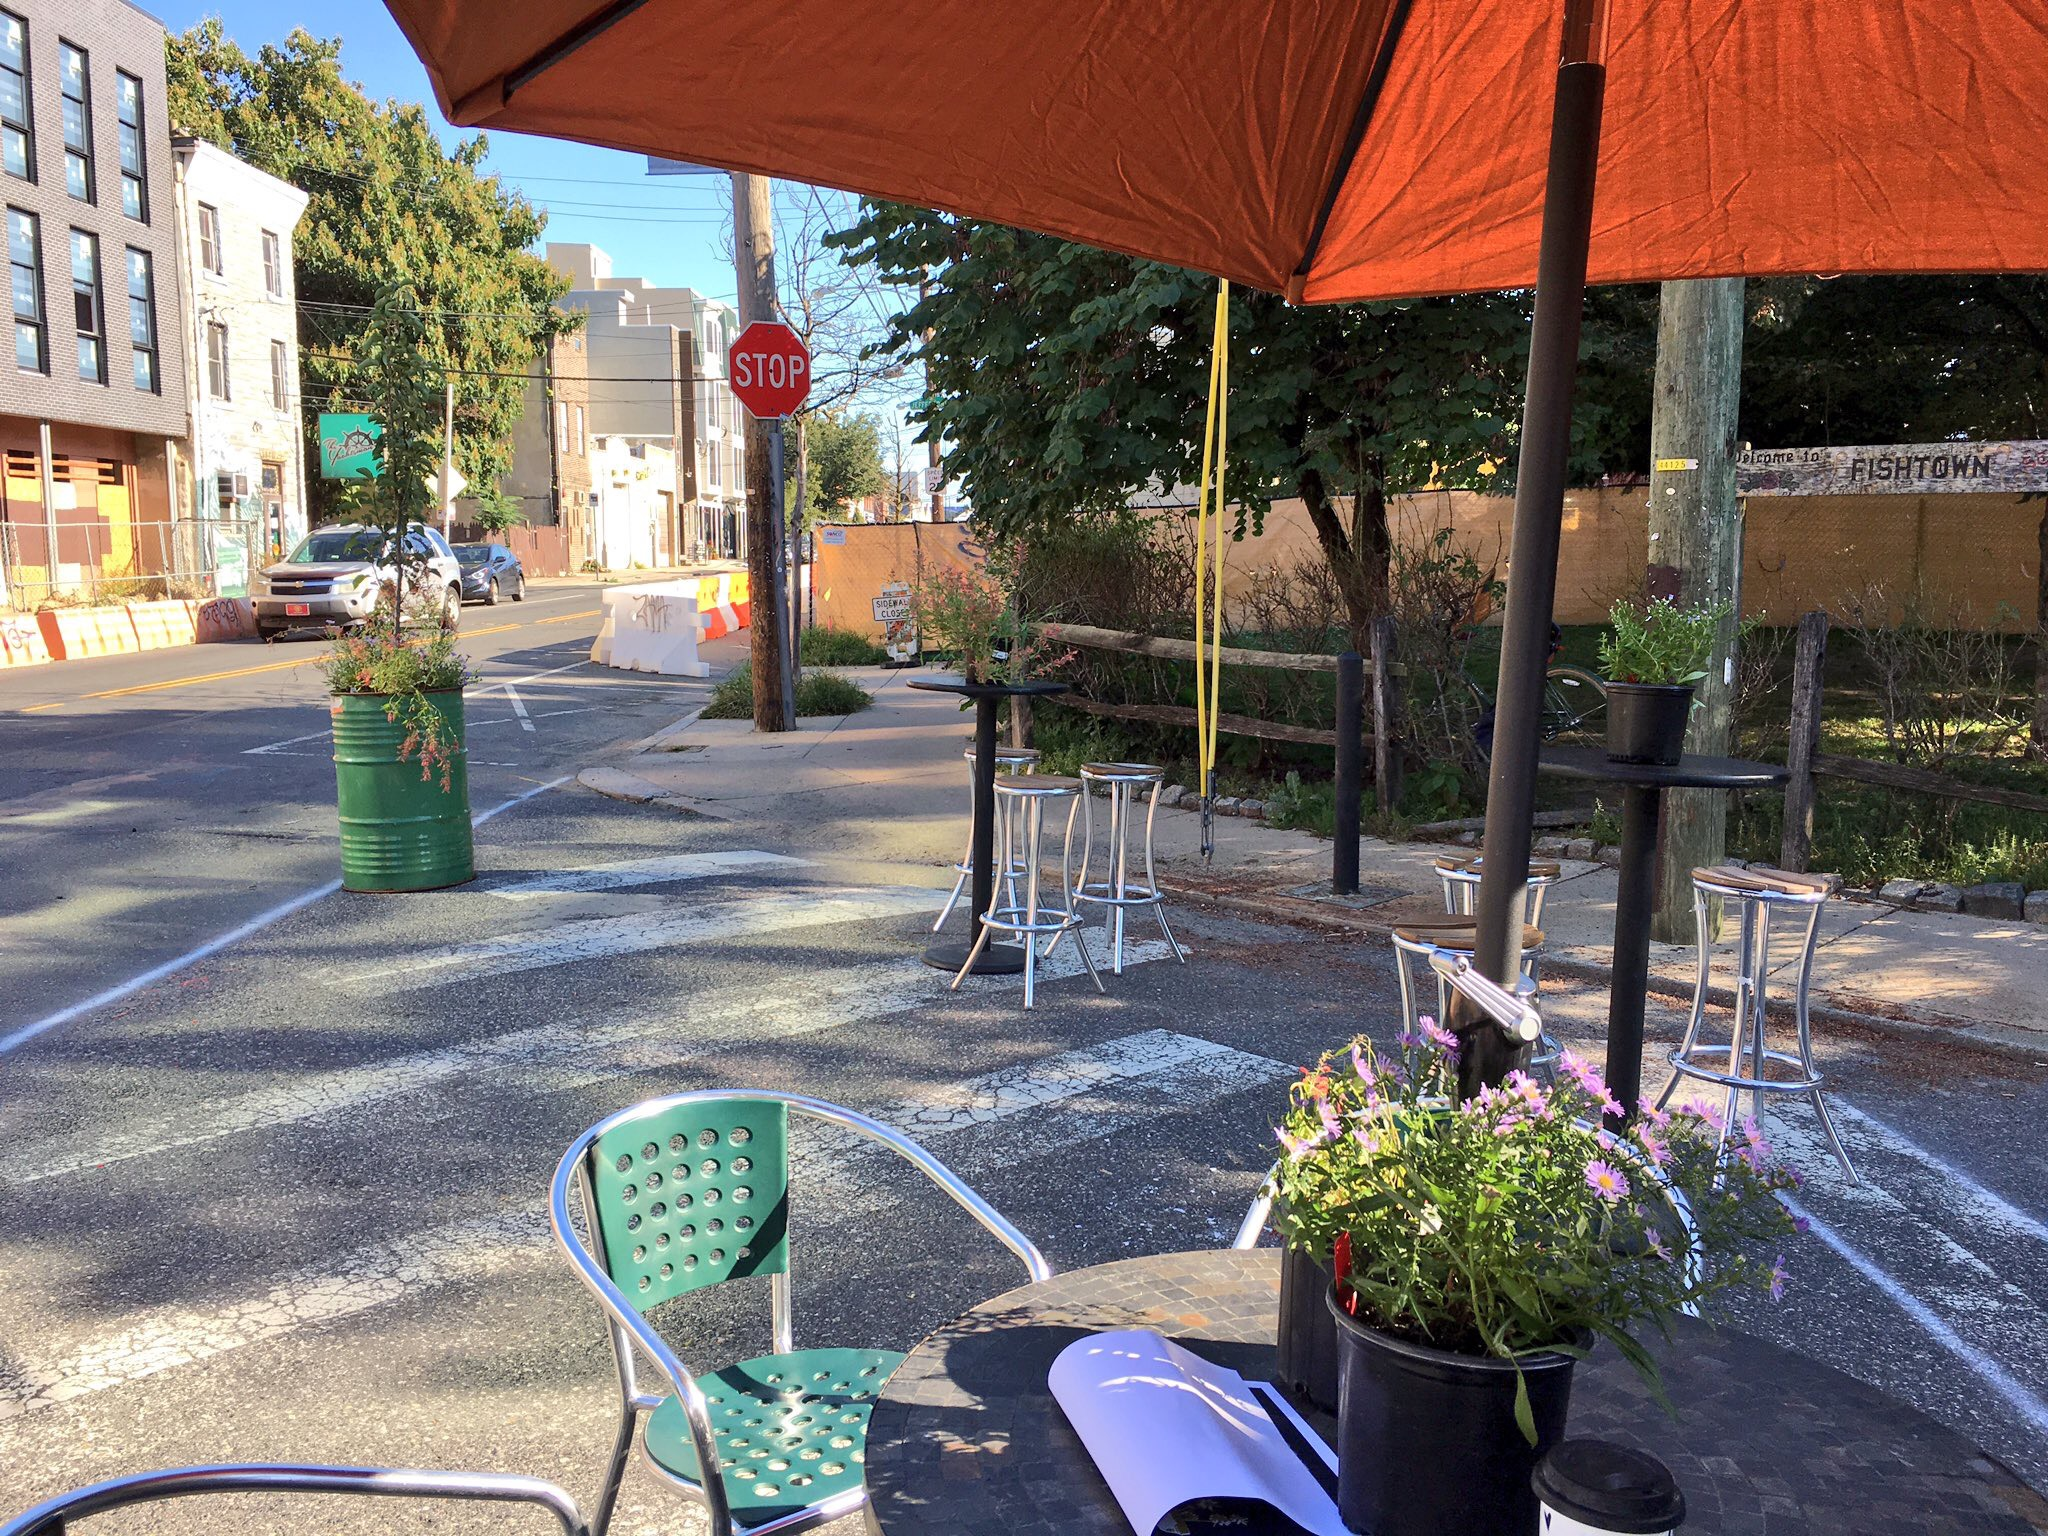 Fishtown Neighbors, Greensgrow, and Johnny Brenda's have it made in the shade at Belgrade and Frankford Ave.